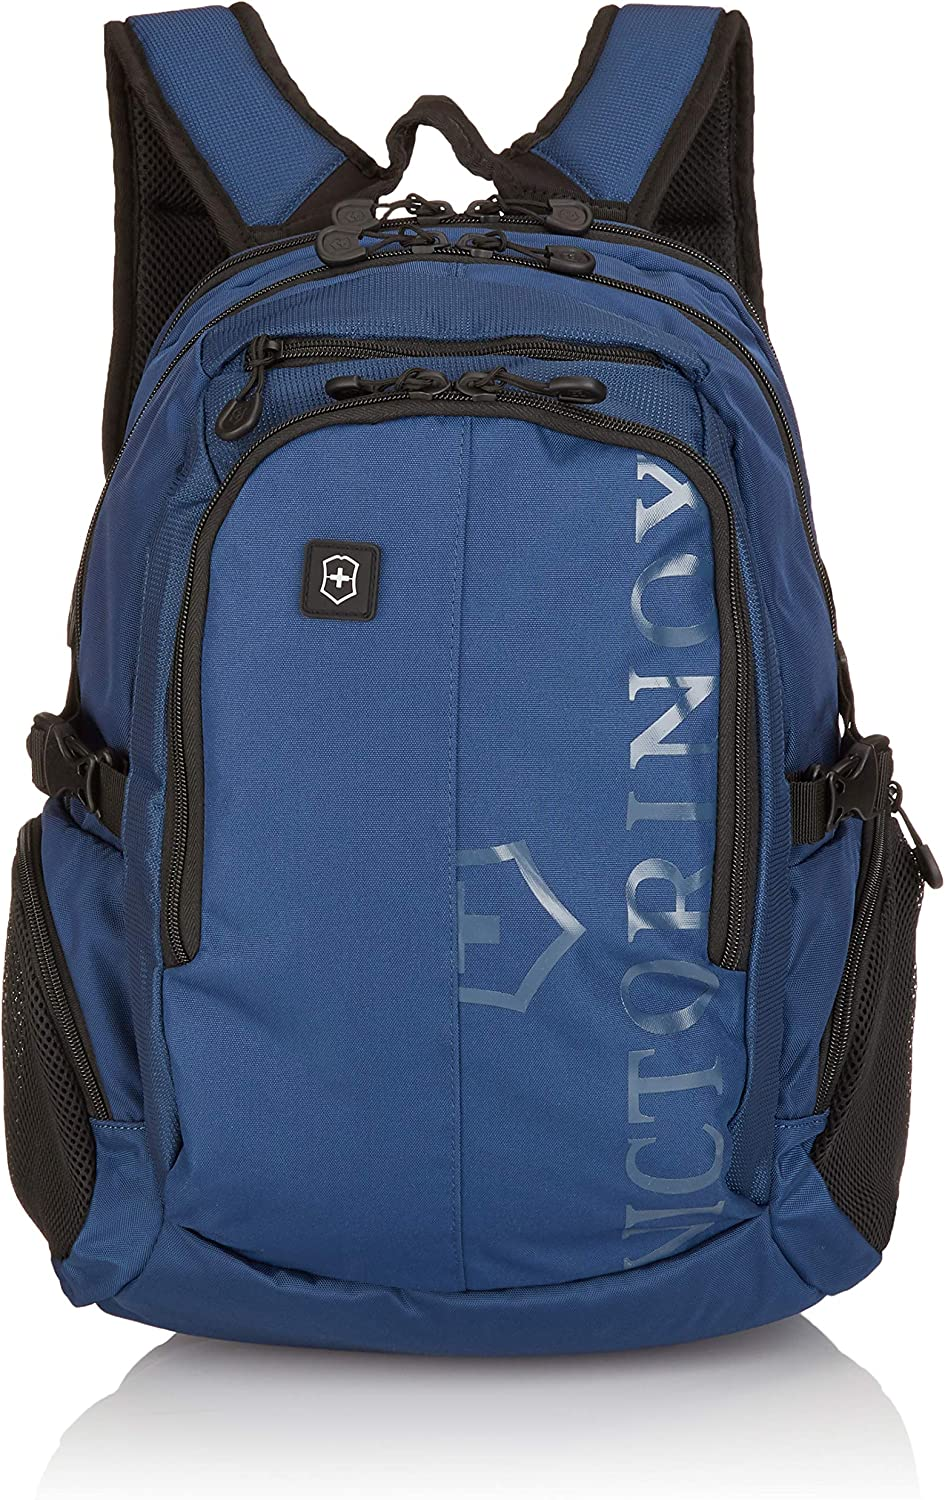 Victorinox VX Sport Pilot Laptop Backpack, Blue/Black, 18.5-Inch